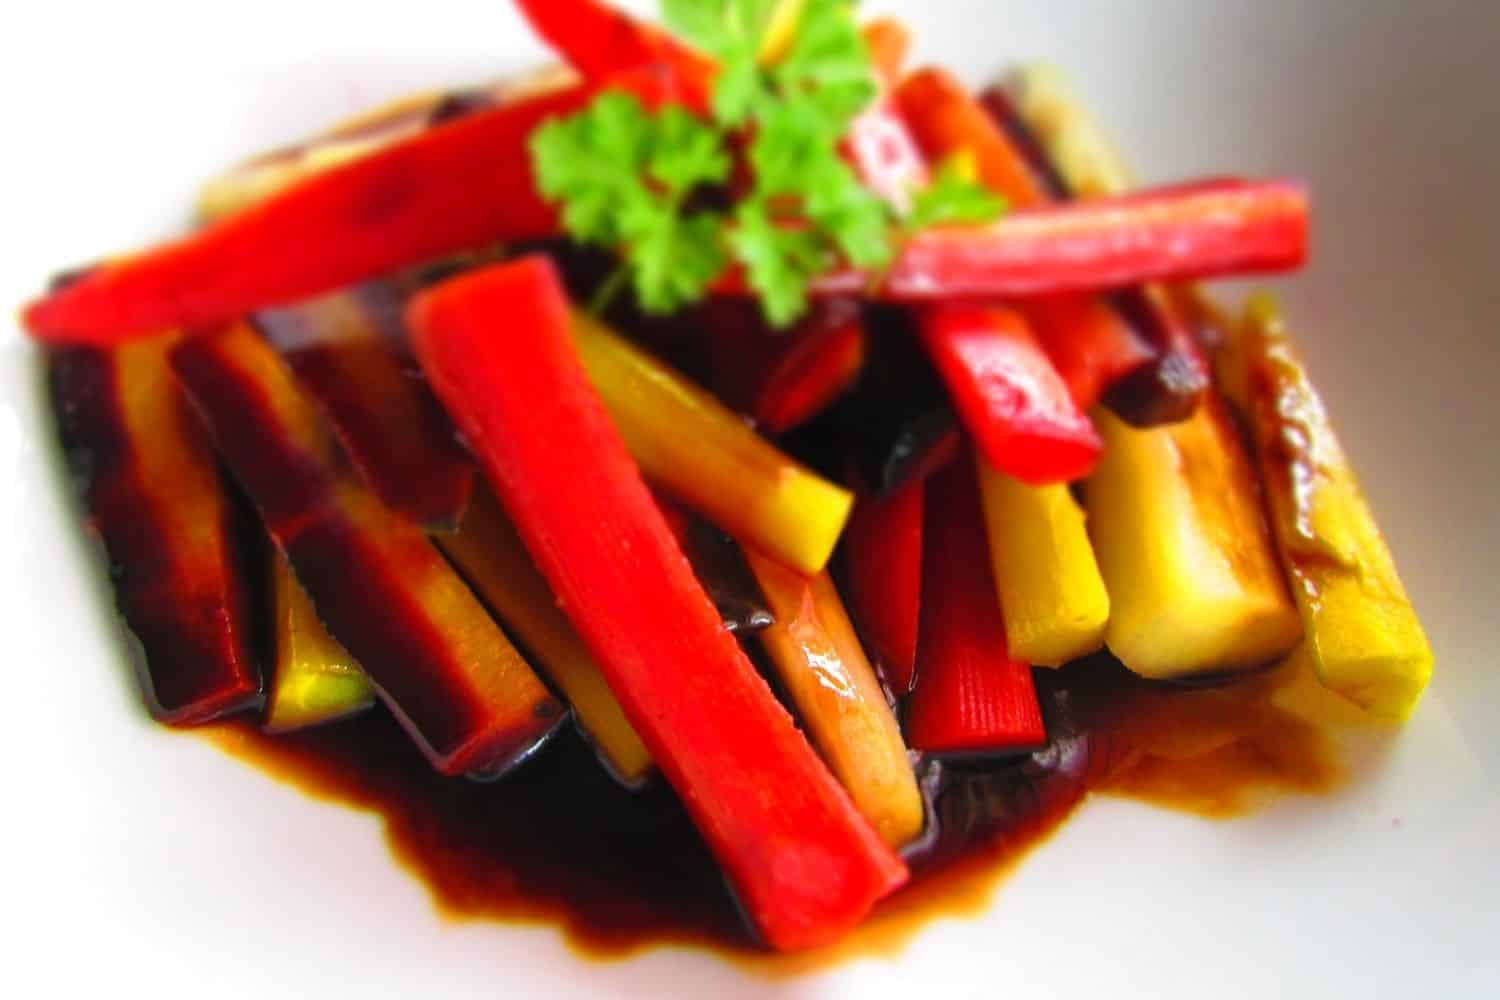 Rainbow Carrots with Balsamic Reduction